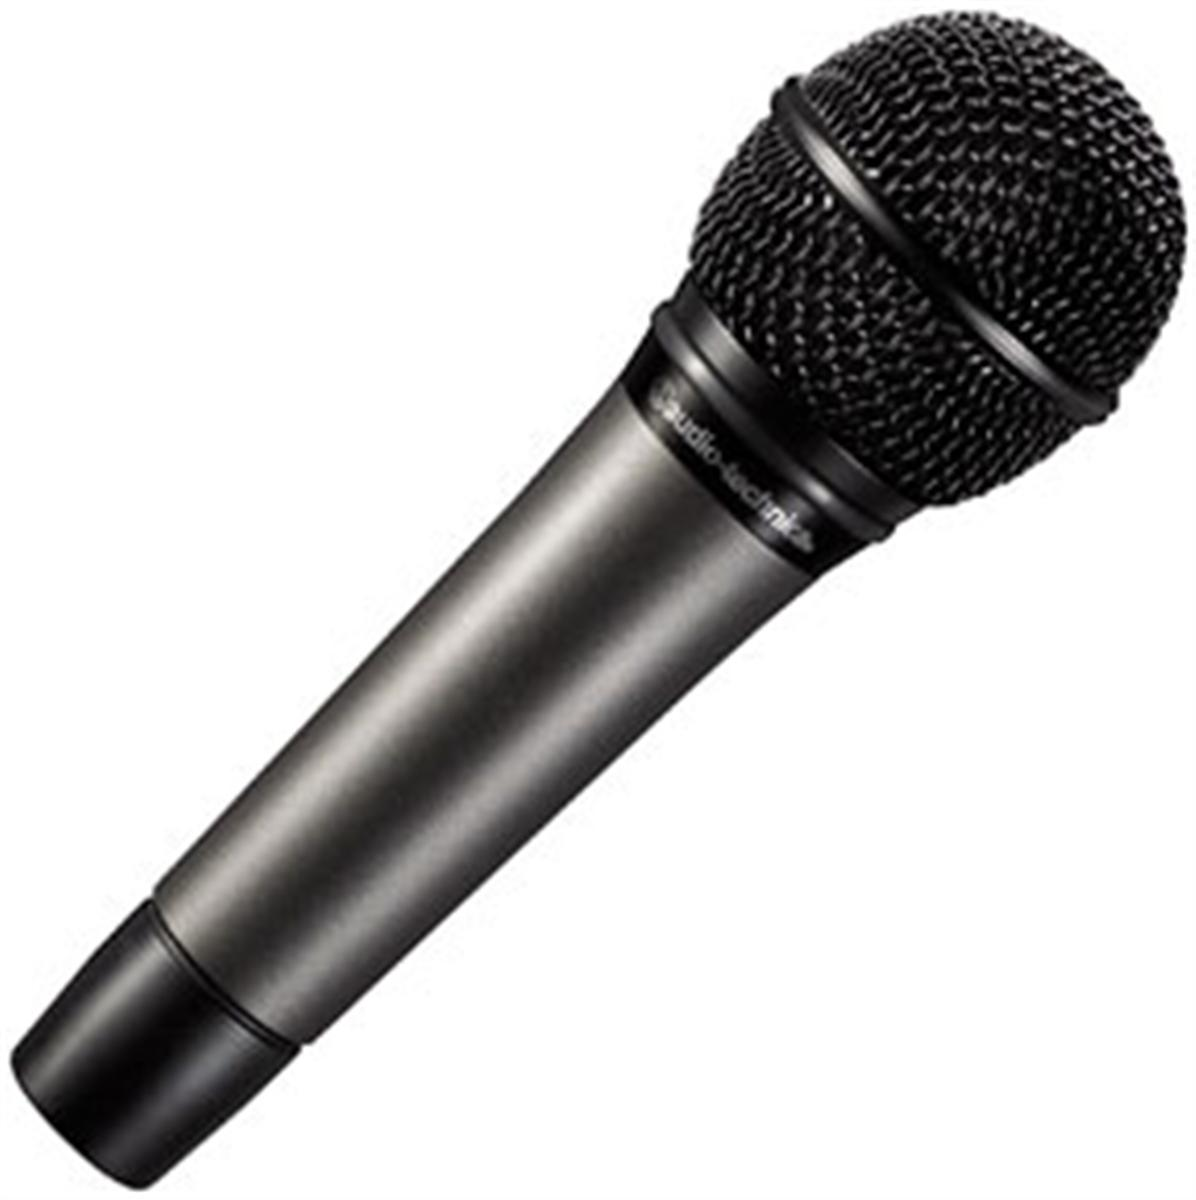 Microphone clip art free clipart images 2